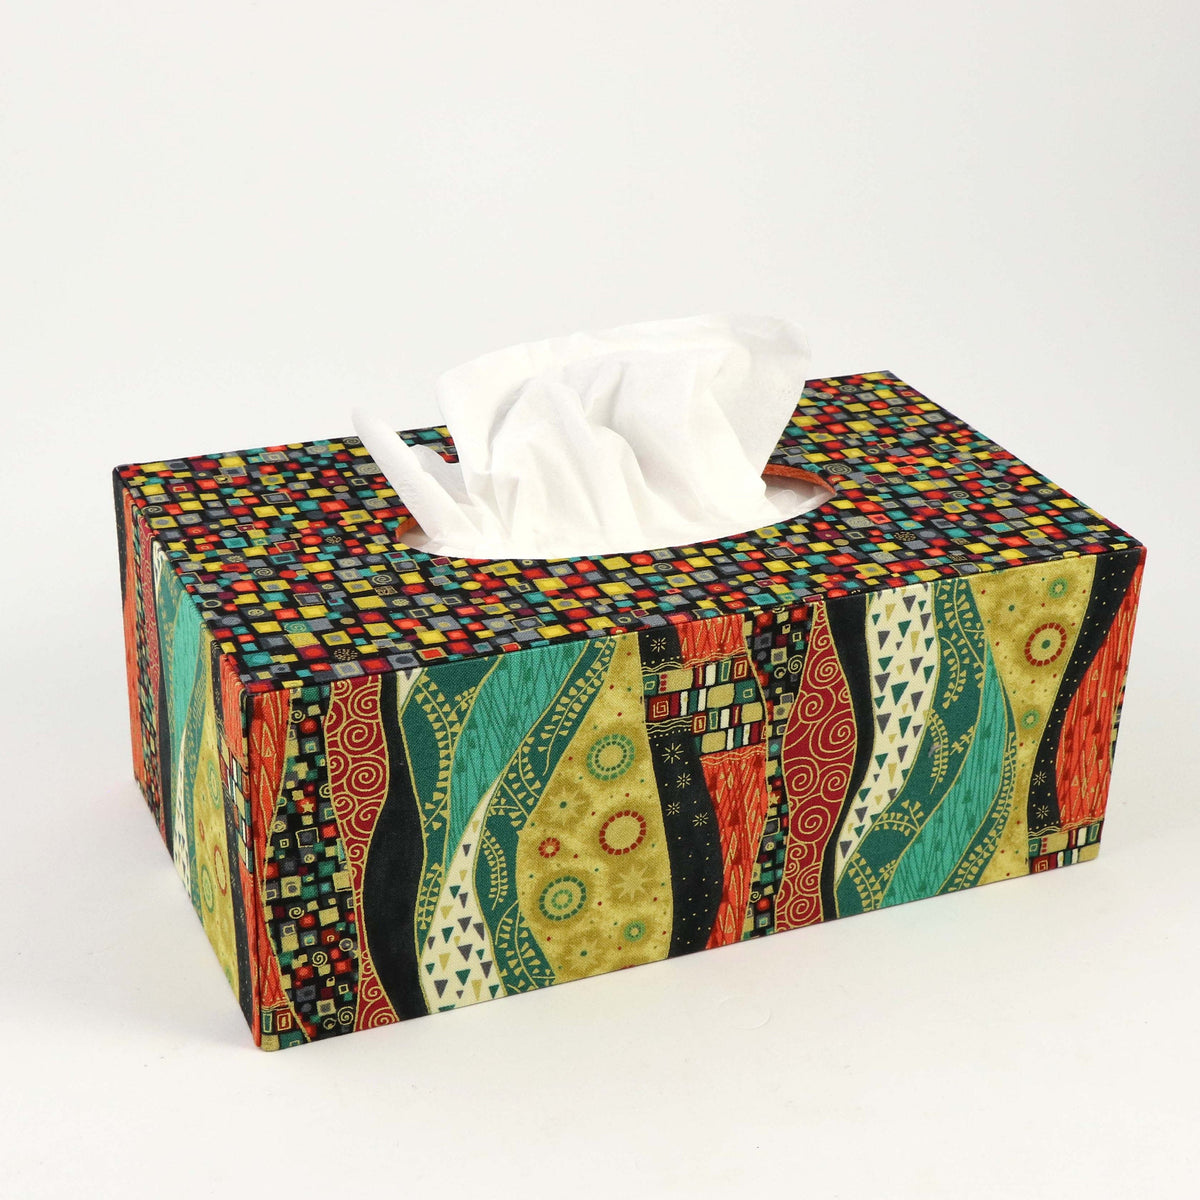 Fabric rectangular tissue box cover DIY kit, cartonnage kit 181, online instructions included - Colorway Arts